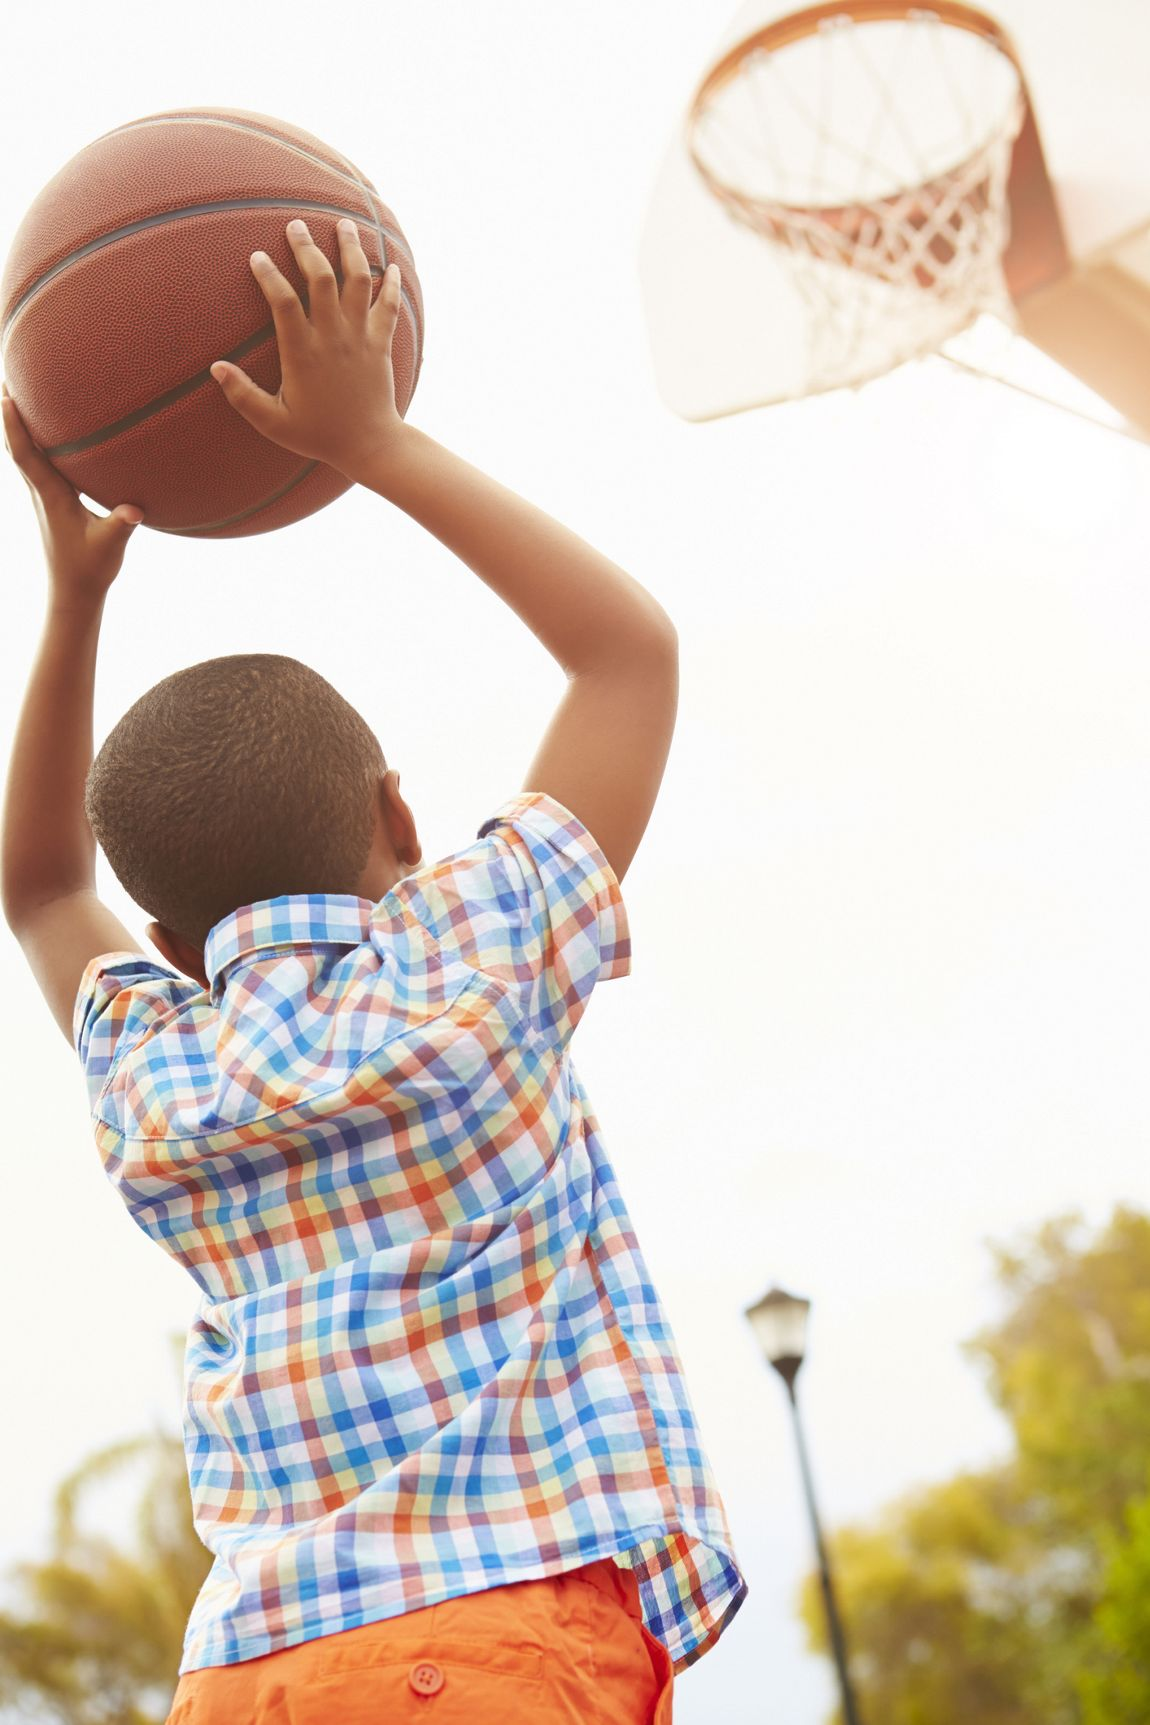 Rear View Of Boy On Basketball Court Shooting For Basket Hoding